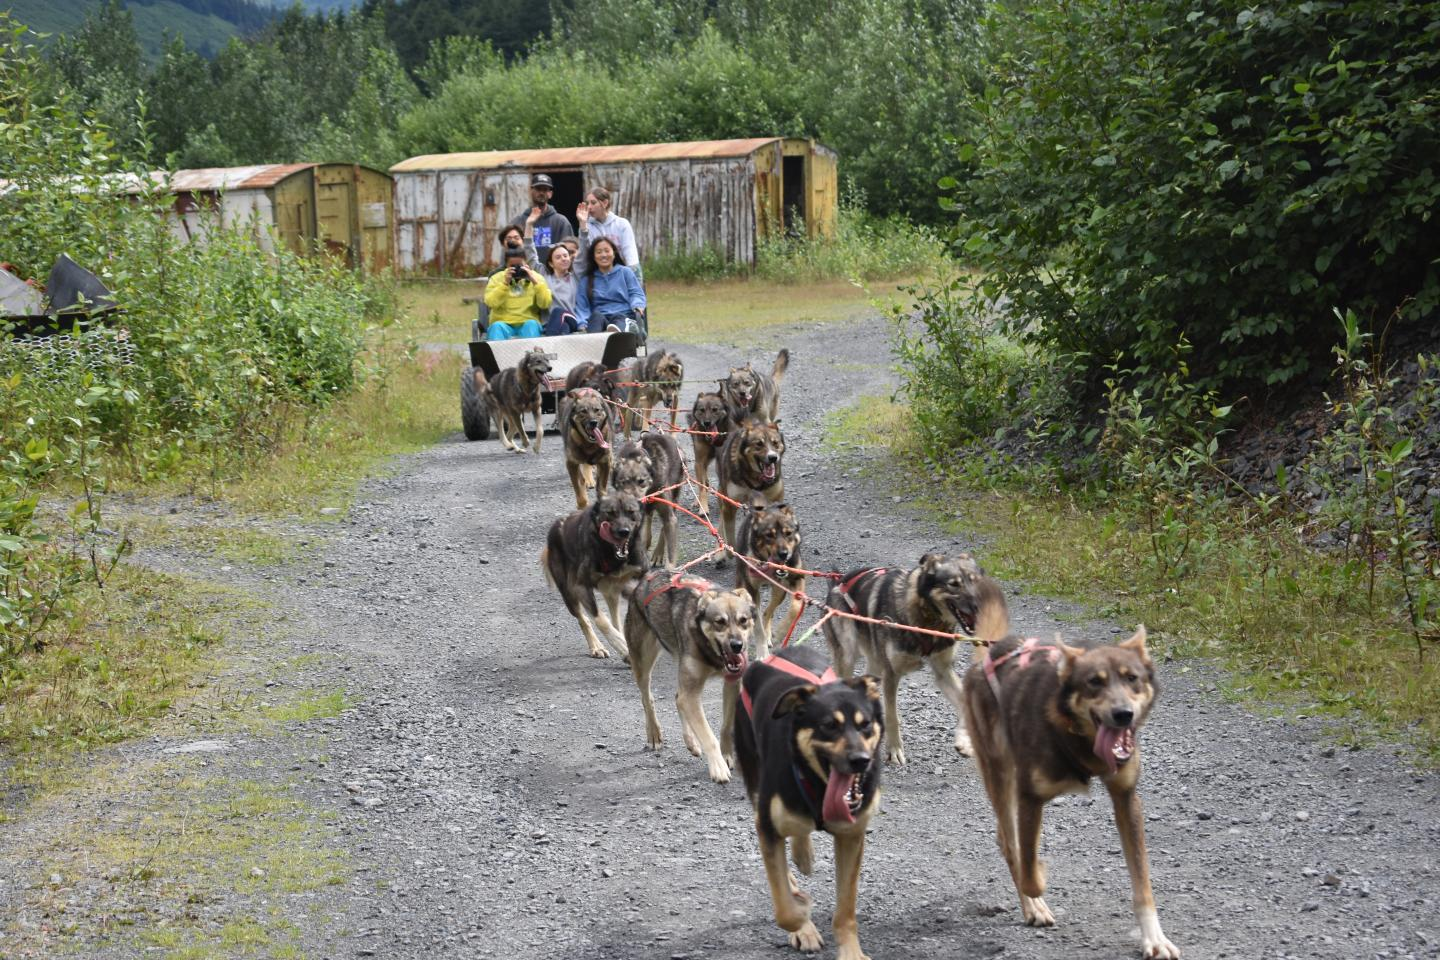 Students go dog sledding in Alaska on summer teen travel and adventure program.